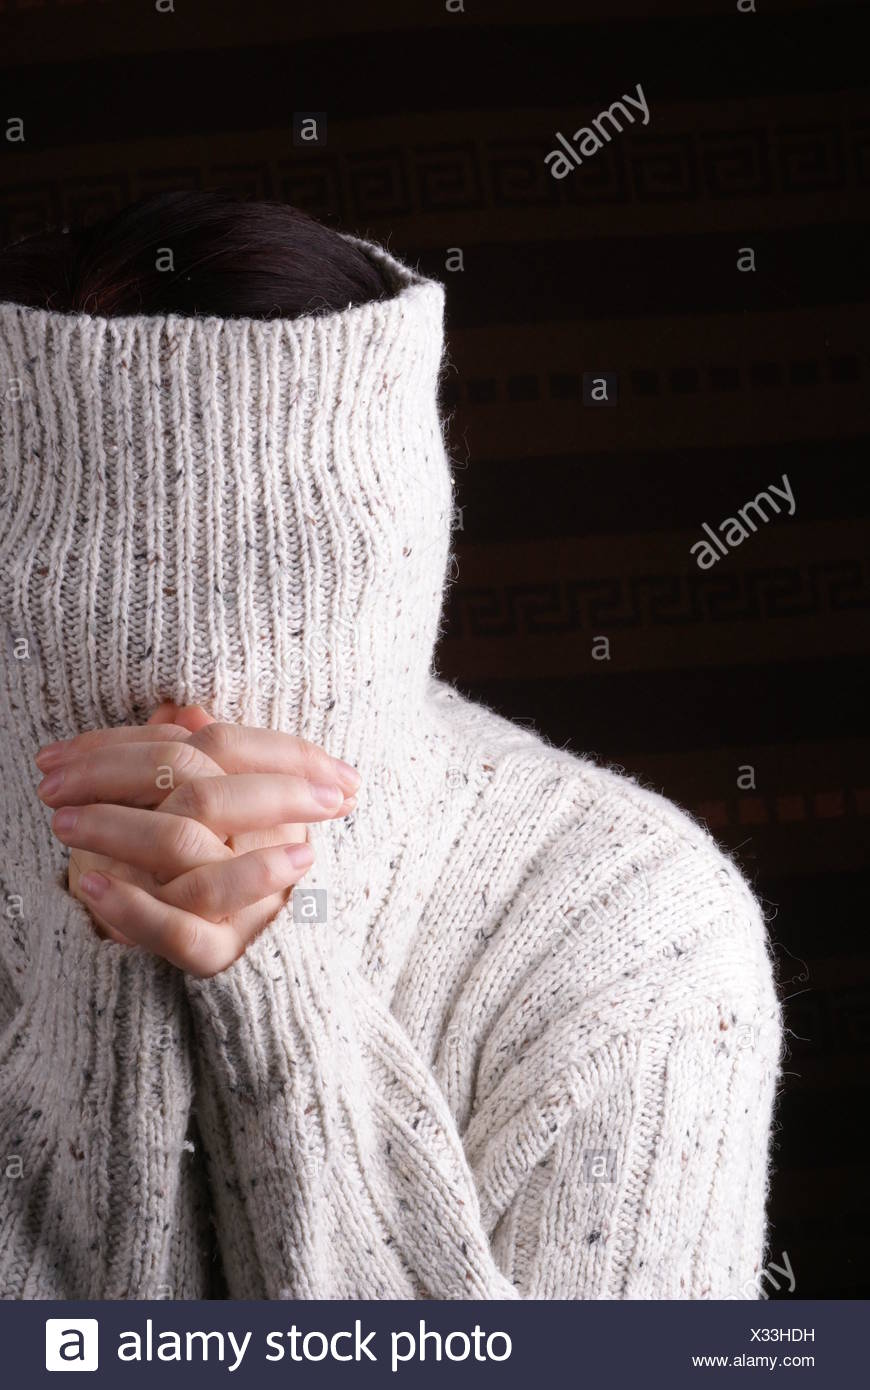 humor,bizarre,hiding,turtleneck,praying - Stock Image